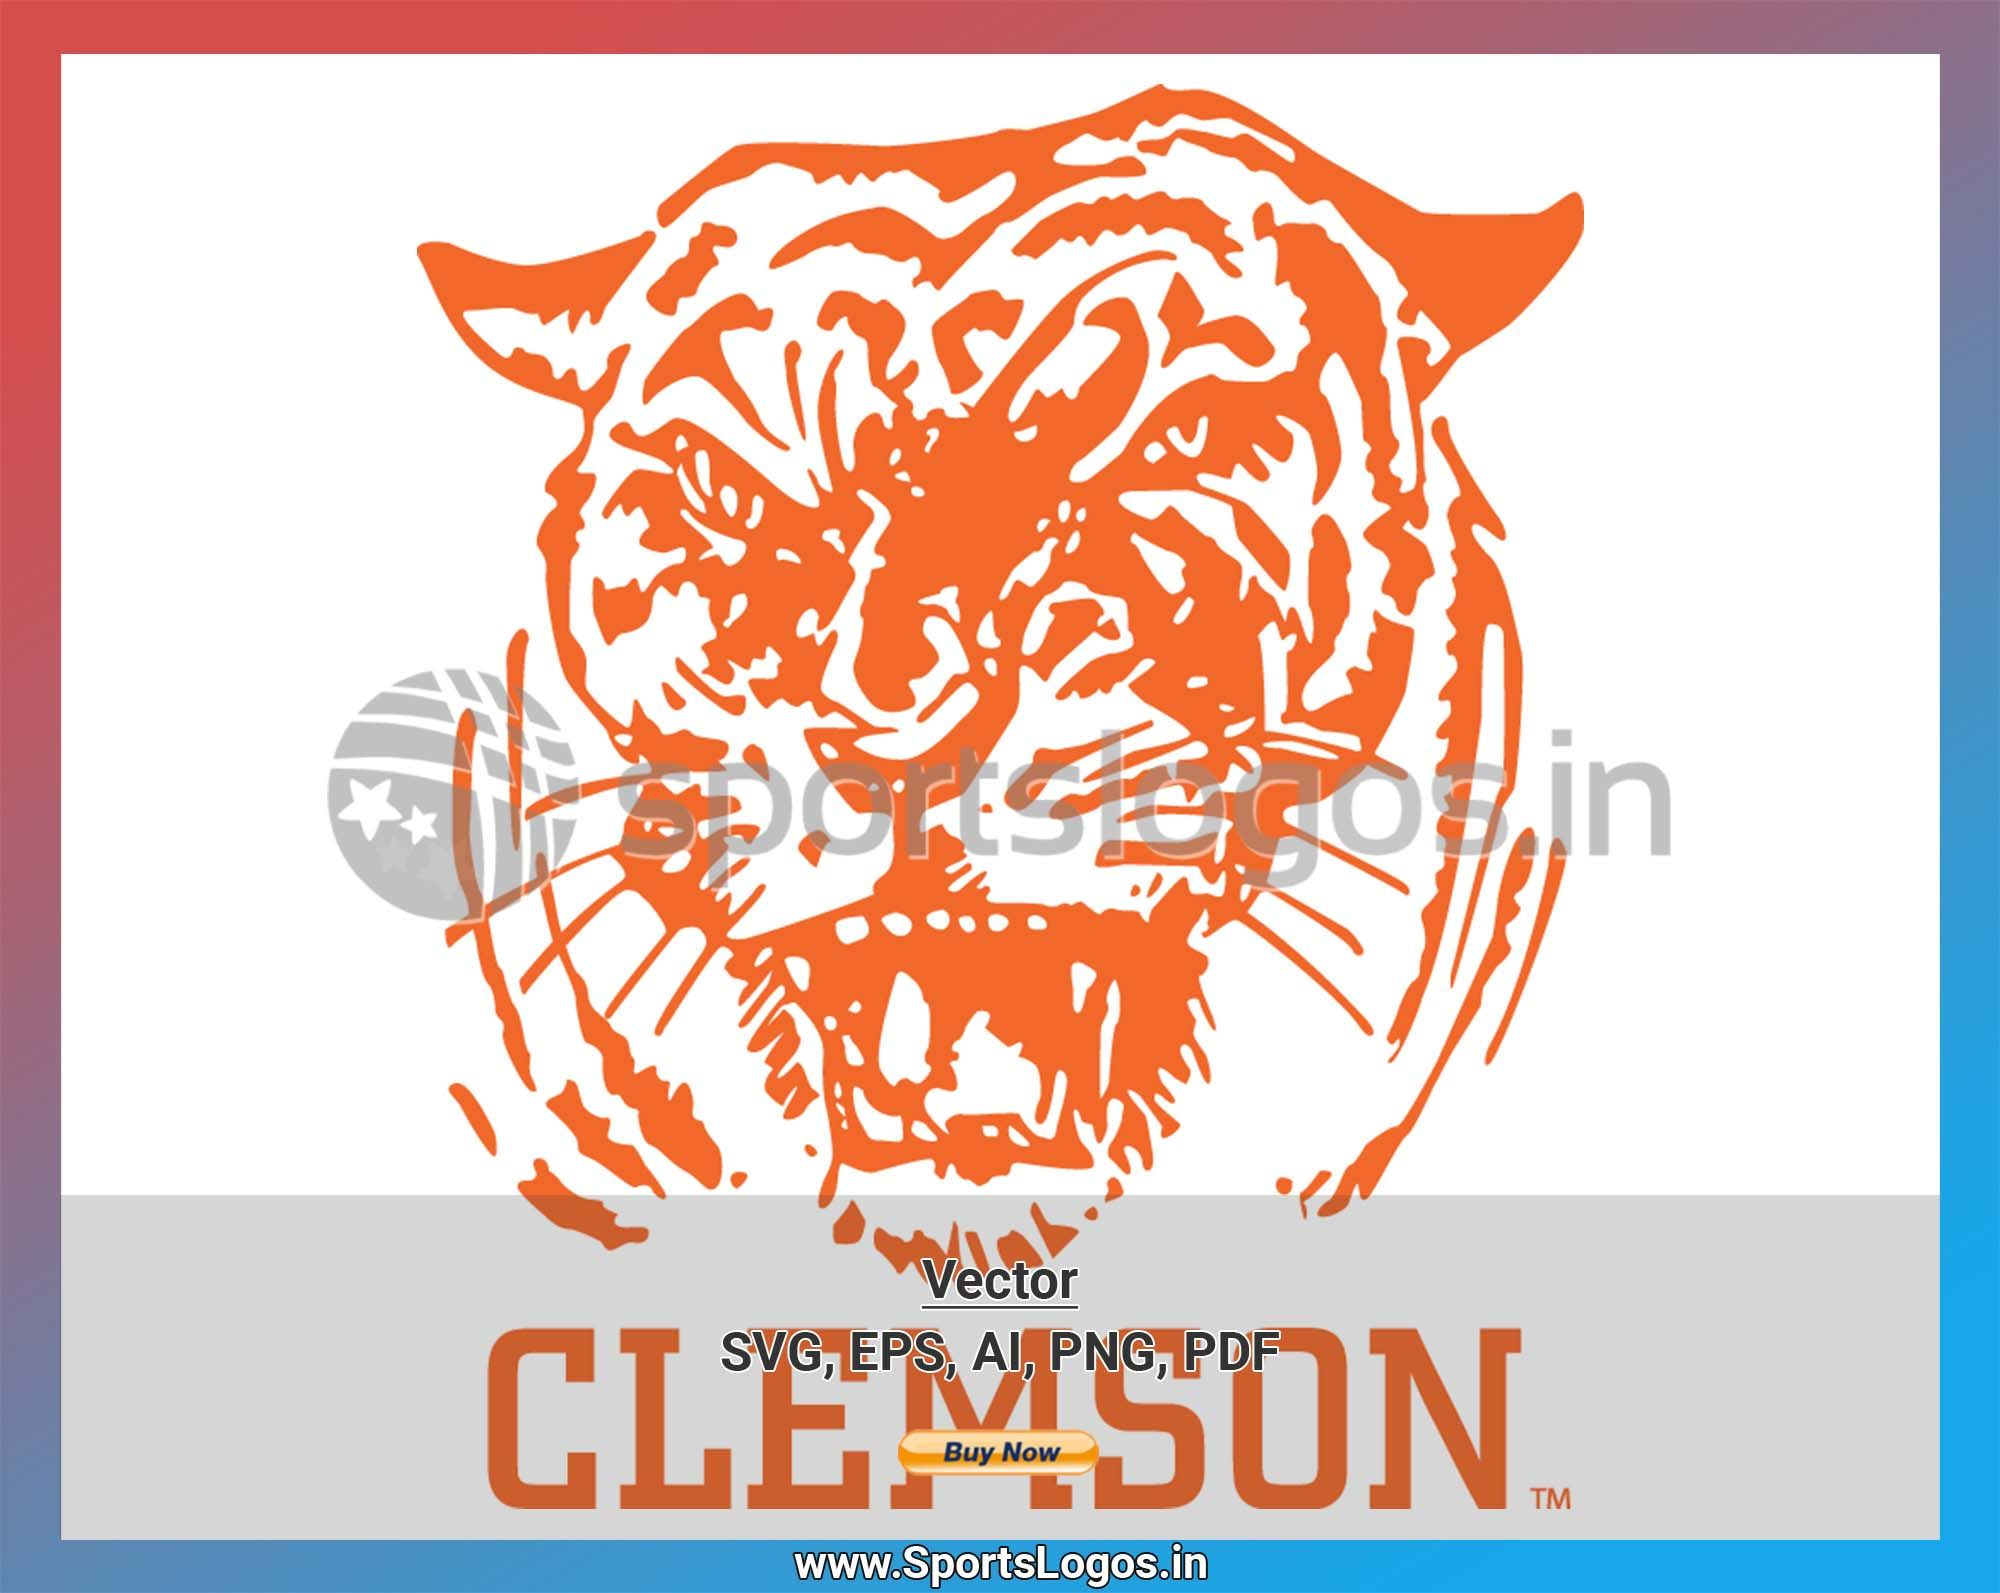 Clemson Tigers College Sports Vector Svg Logo In 5 Formats Spln000903 Sports Logos Embroidery Vector For Nfl Nba Nhl Mlb Milb And More Clemson Clemson Tigers Clemson Tigers Football